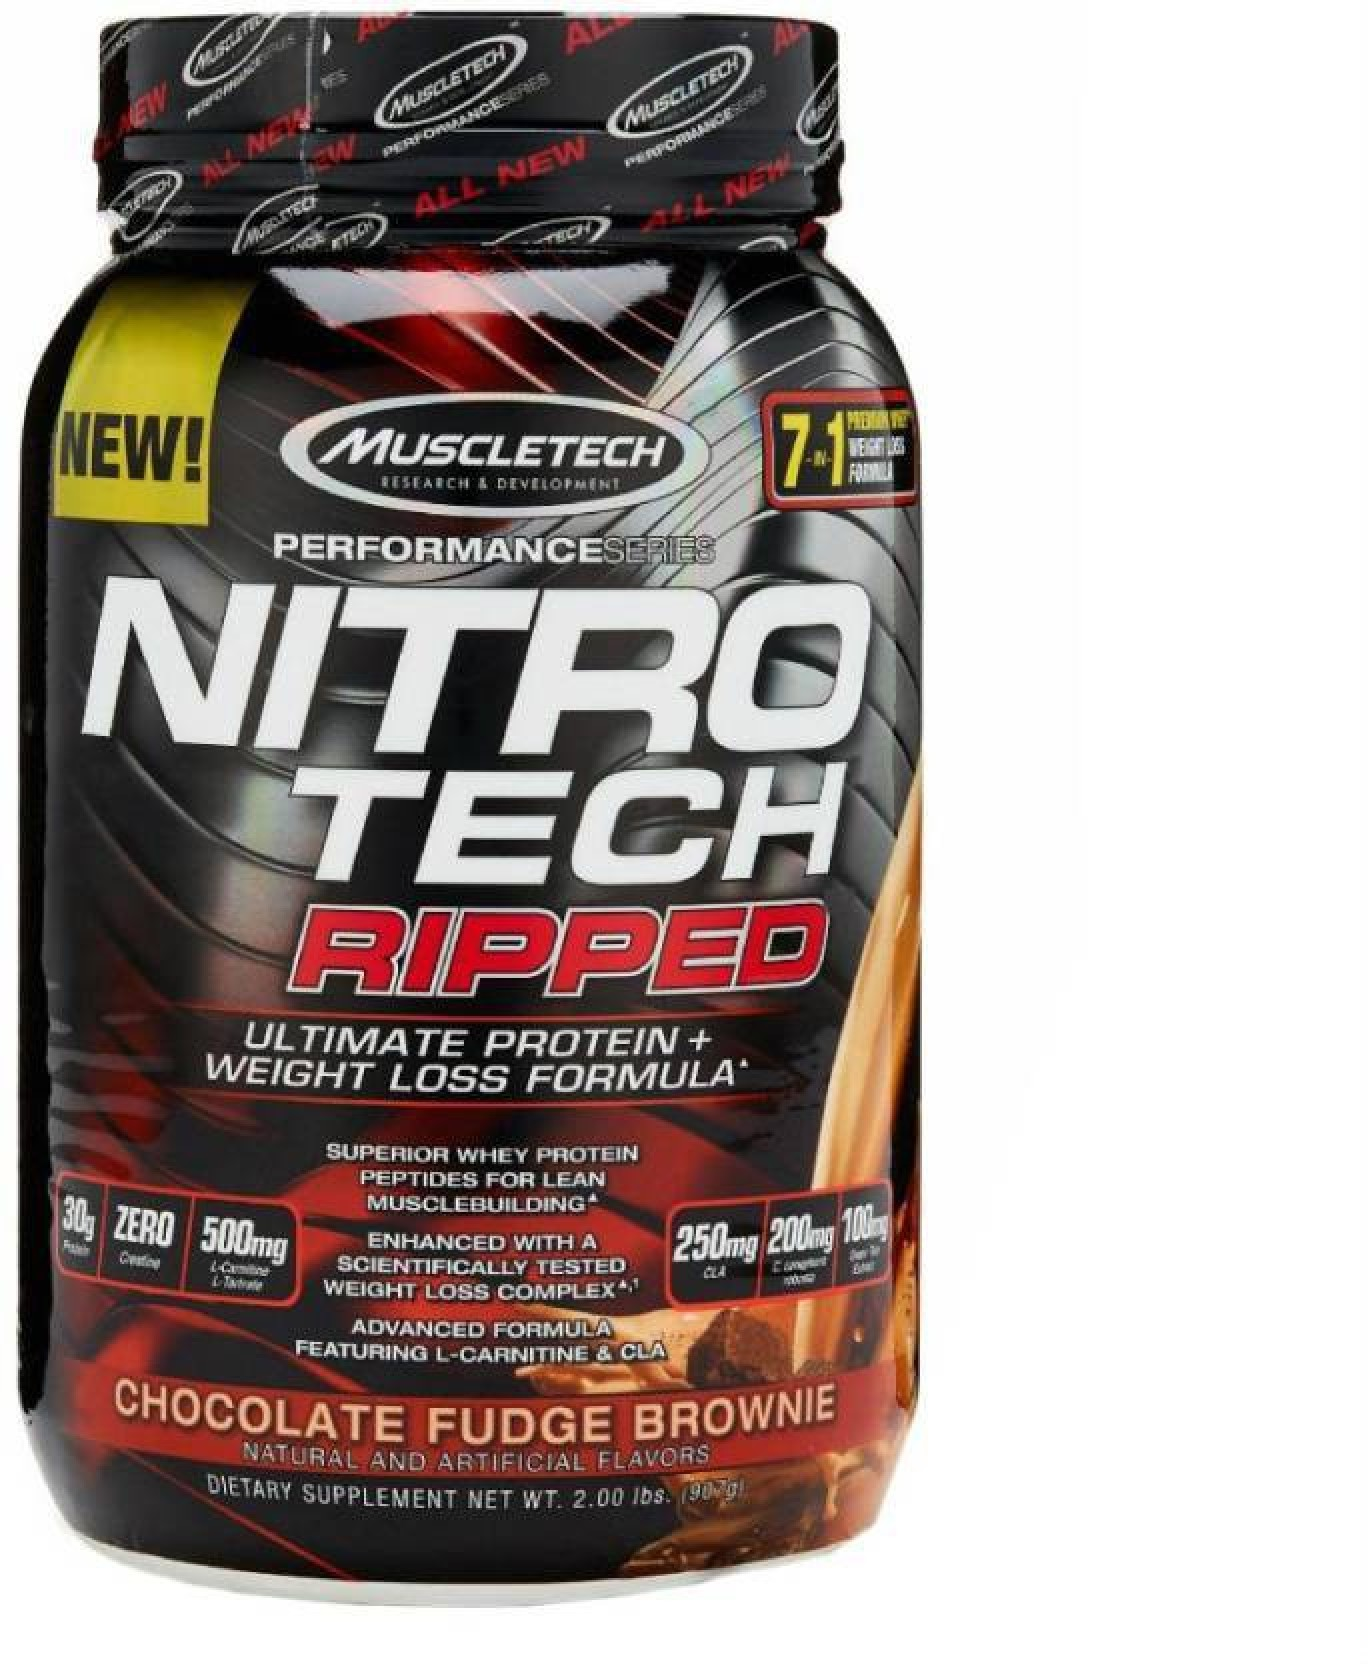 Muscletech Performance Series Nitrotech Ripped Whey Protein Price In 4 Lbs Add To Cart